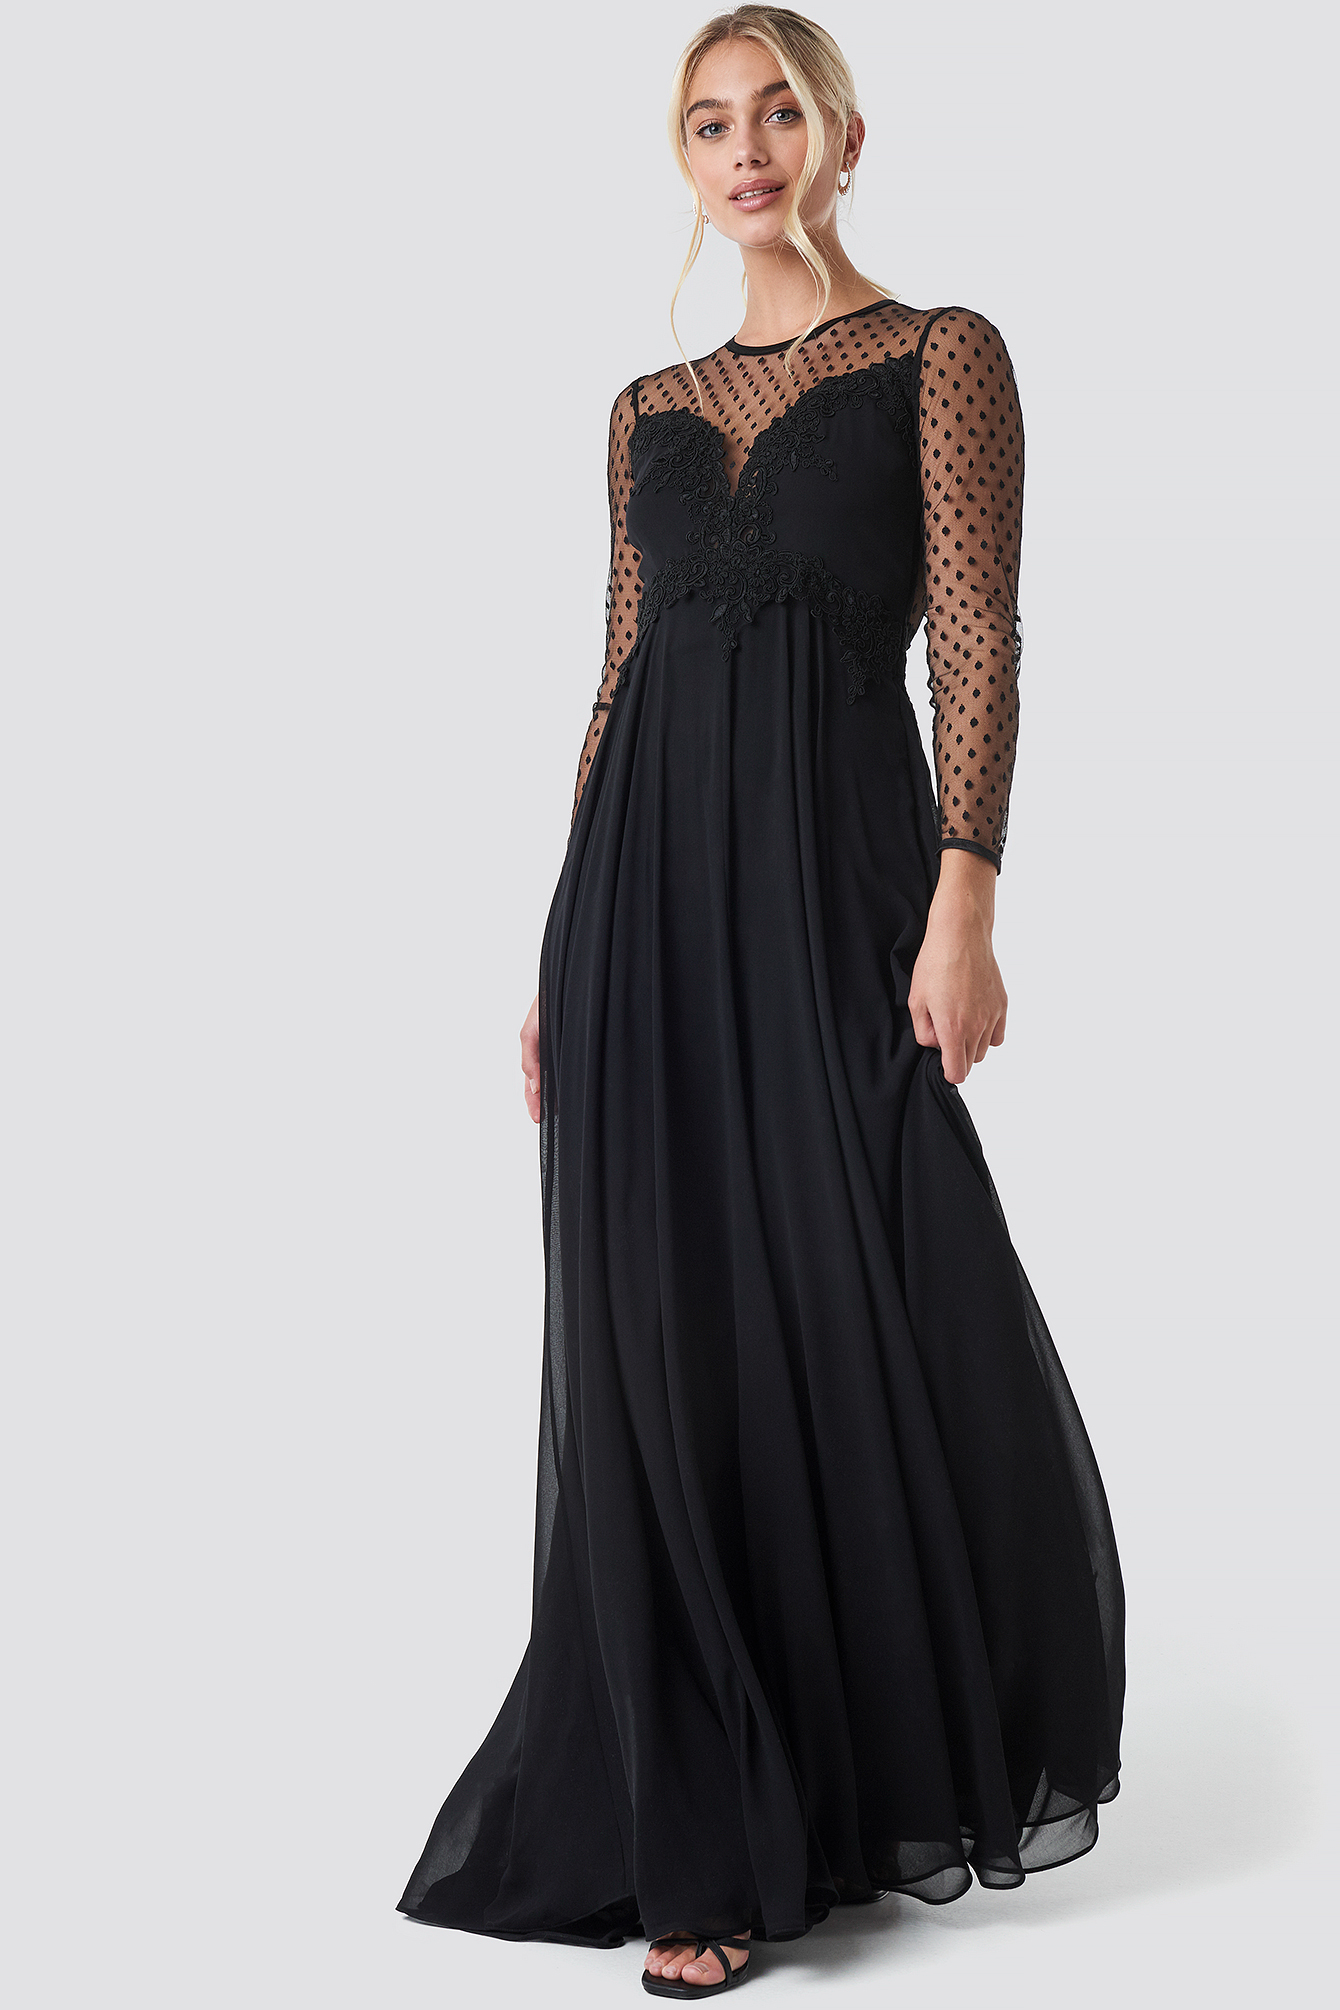 Black Alicia Dress